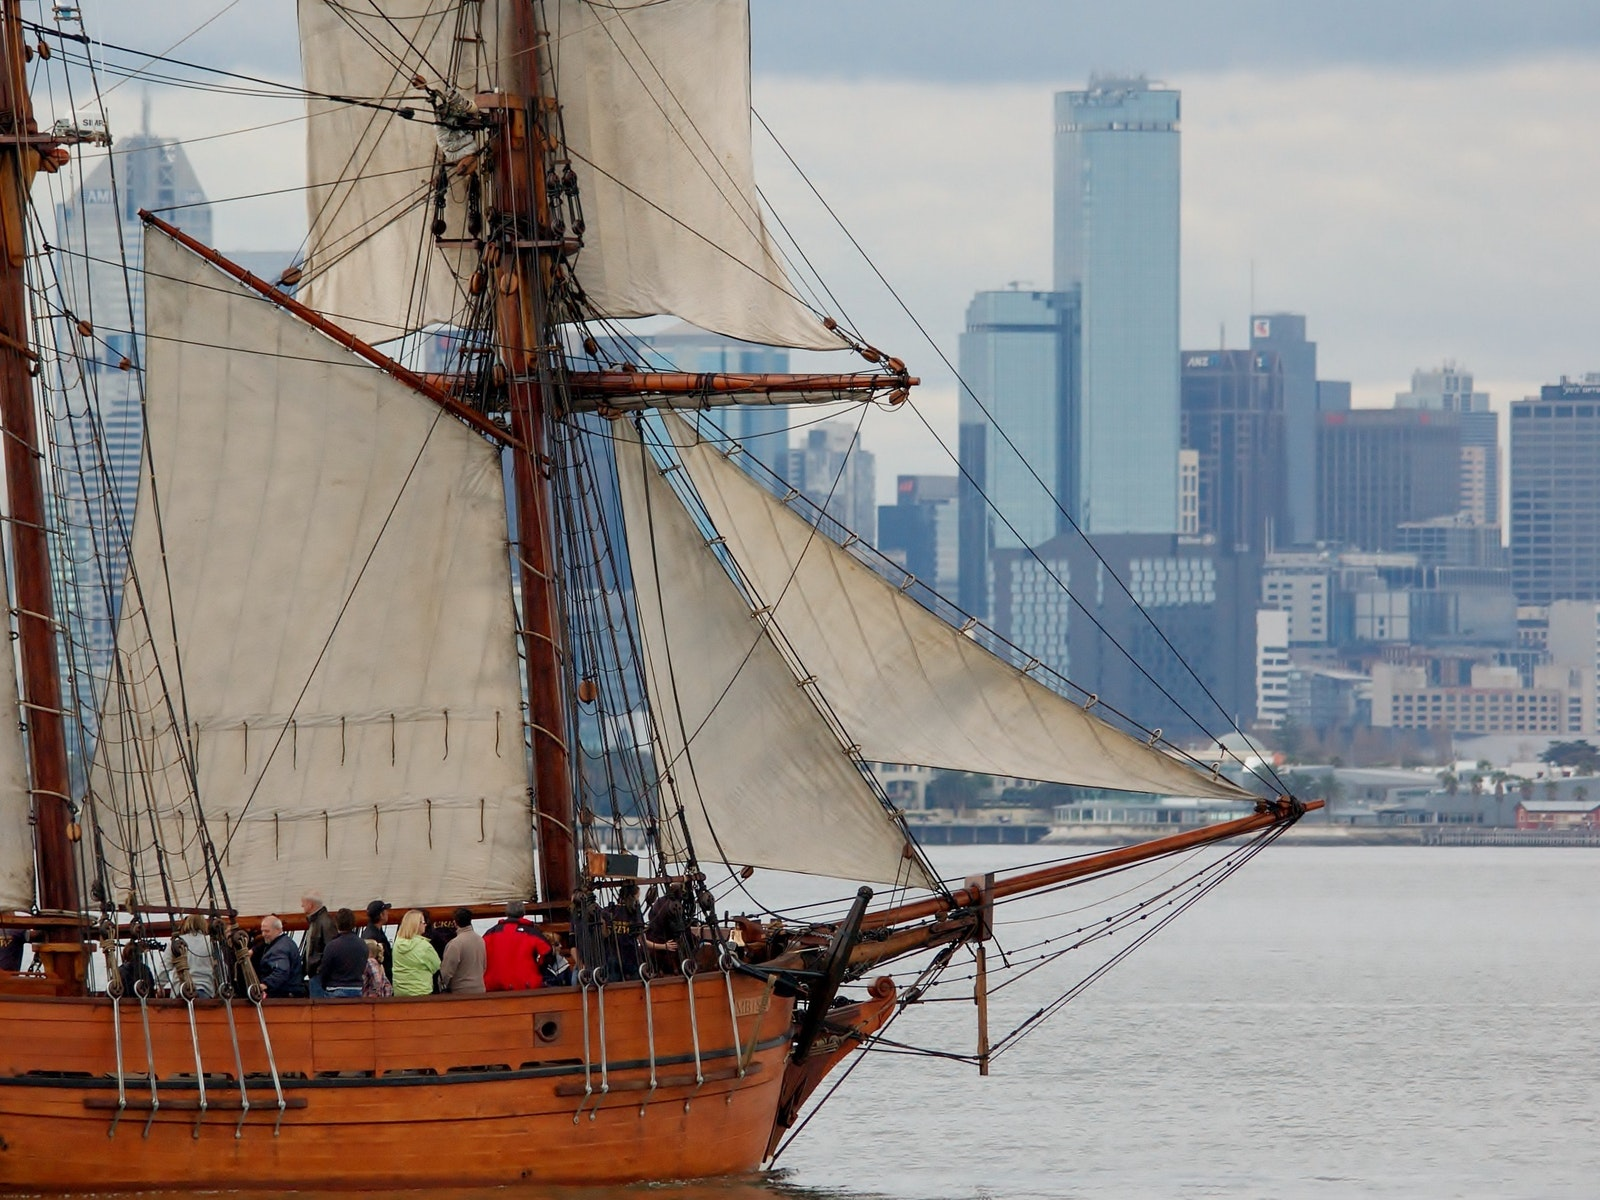 Enterprize - Melbourne's Tall Ship